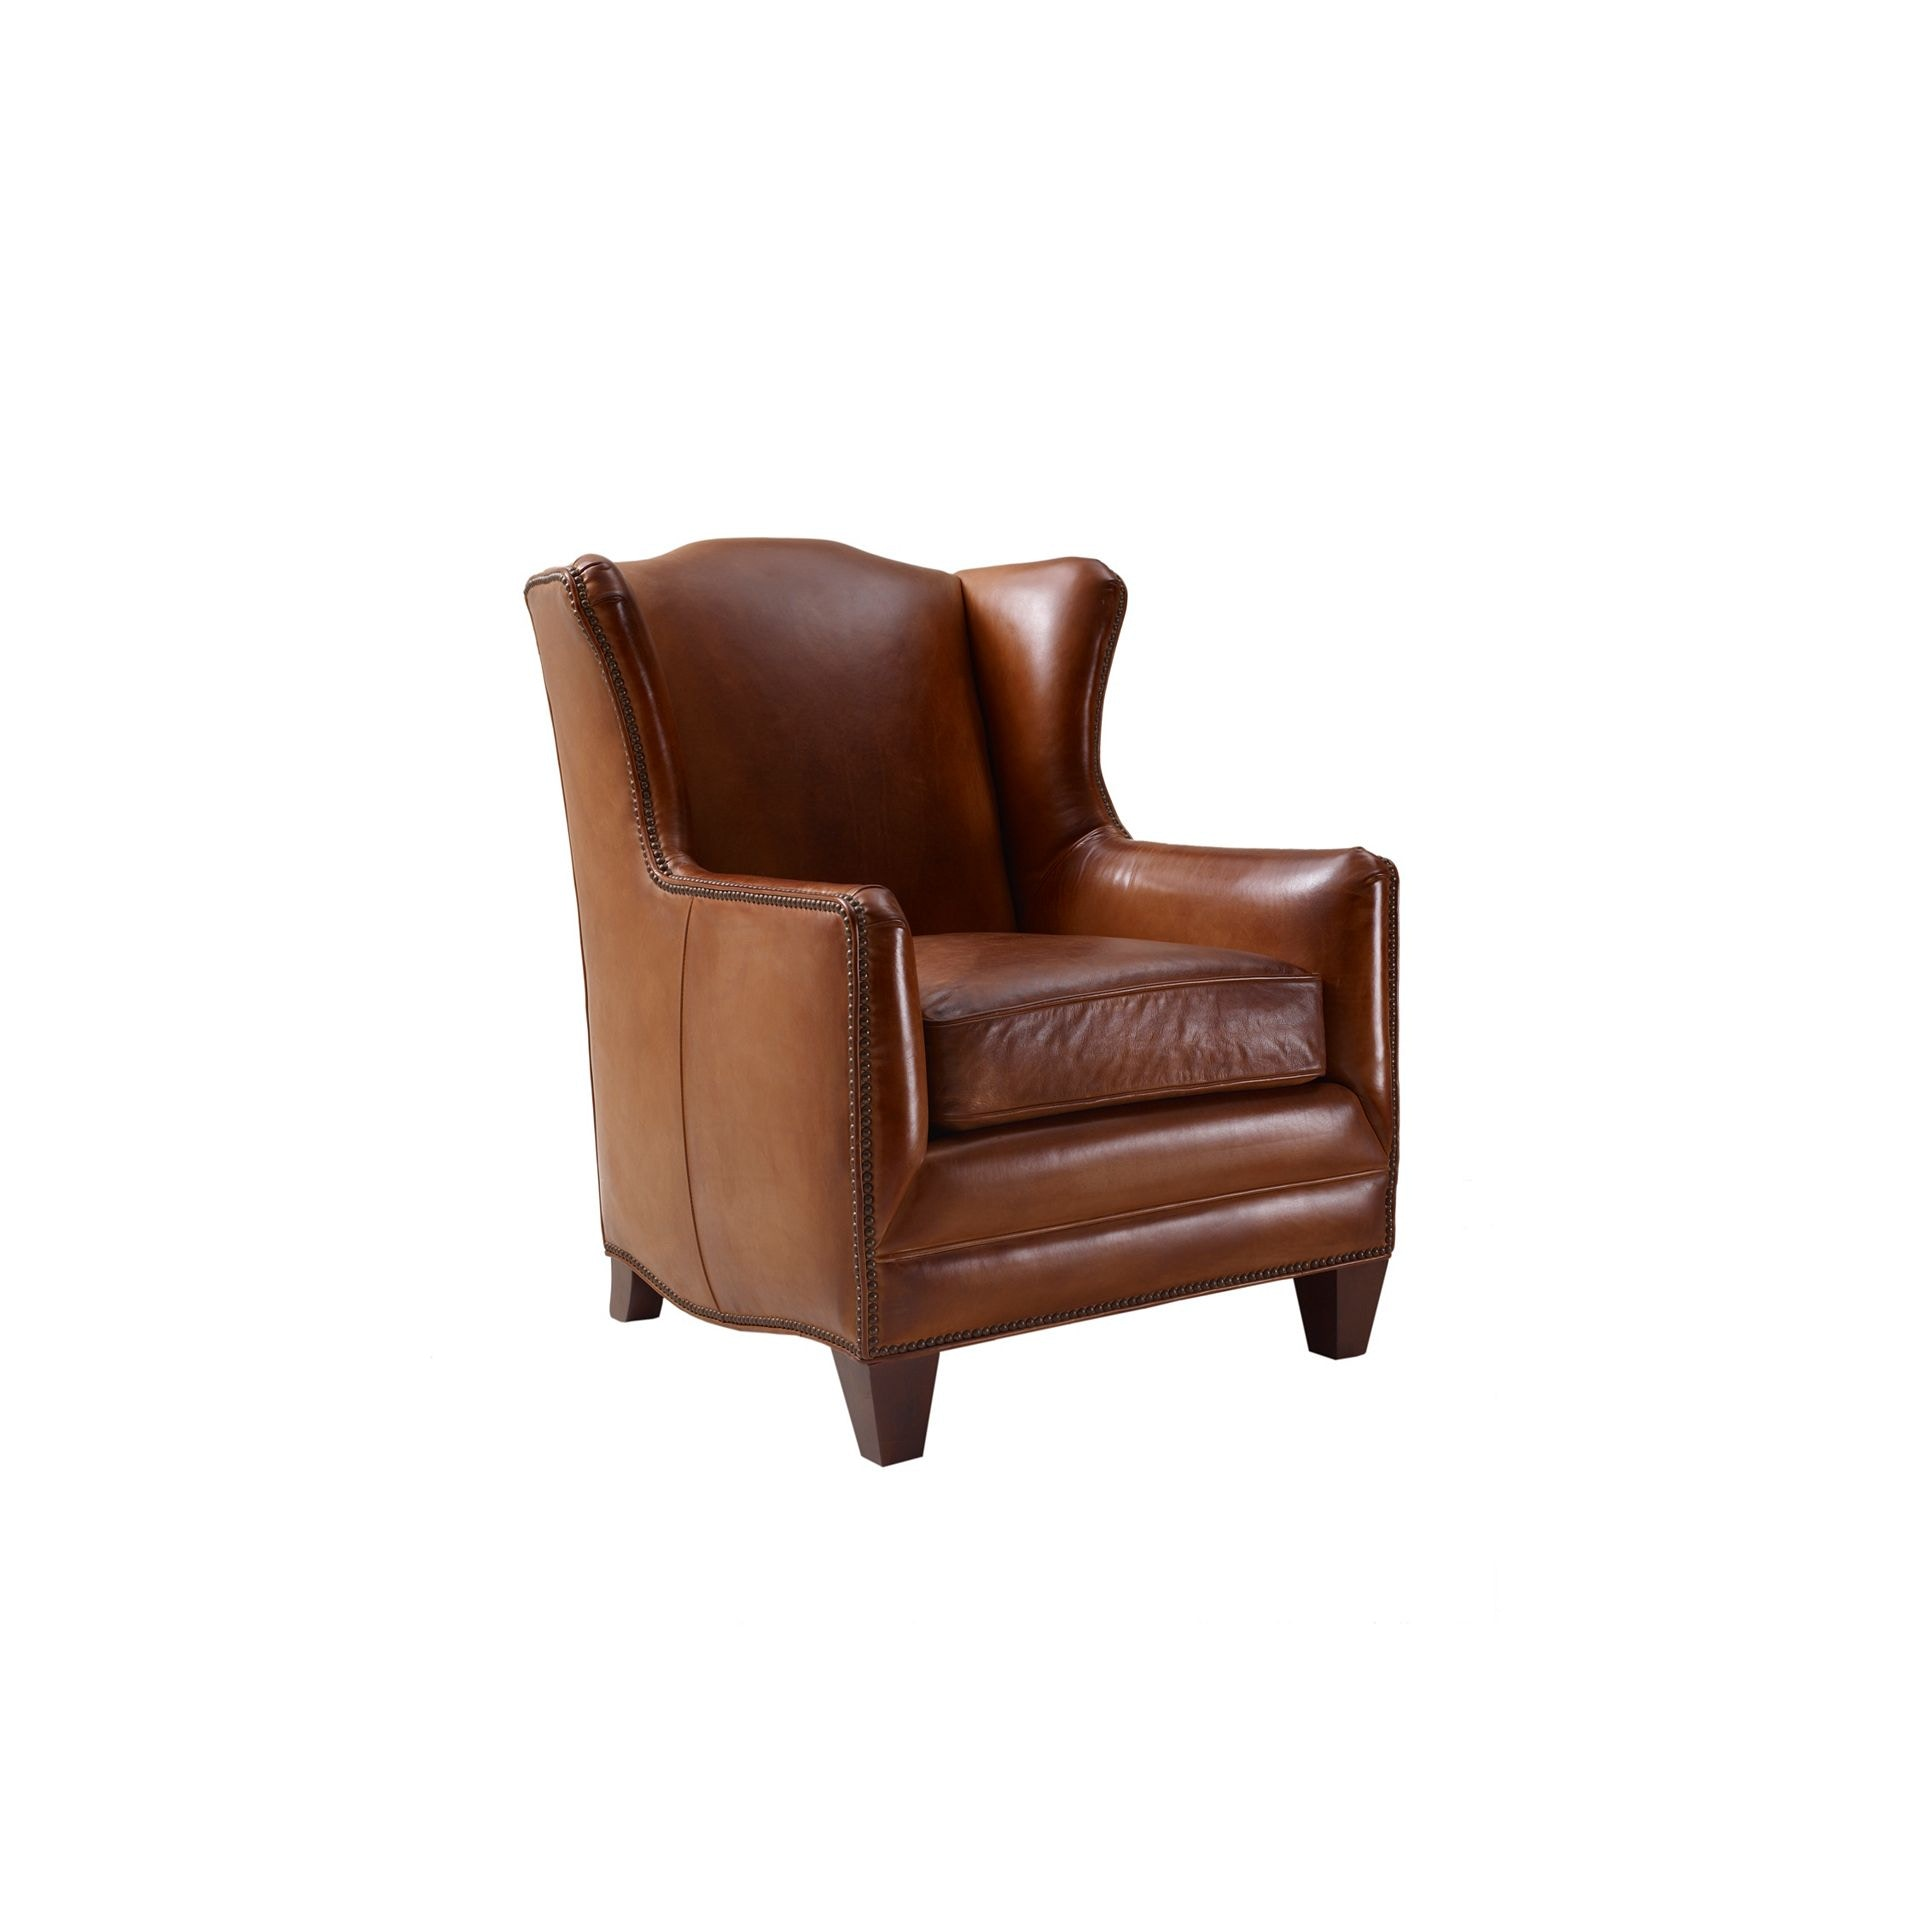 Henredon Furniture Henredon Leather Company Badin Chair Il7737